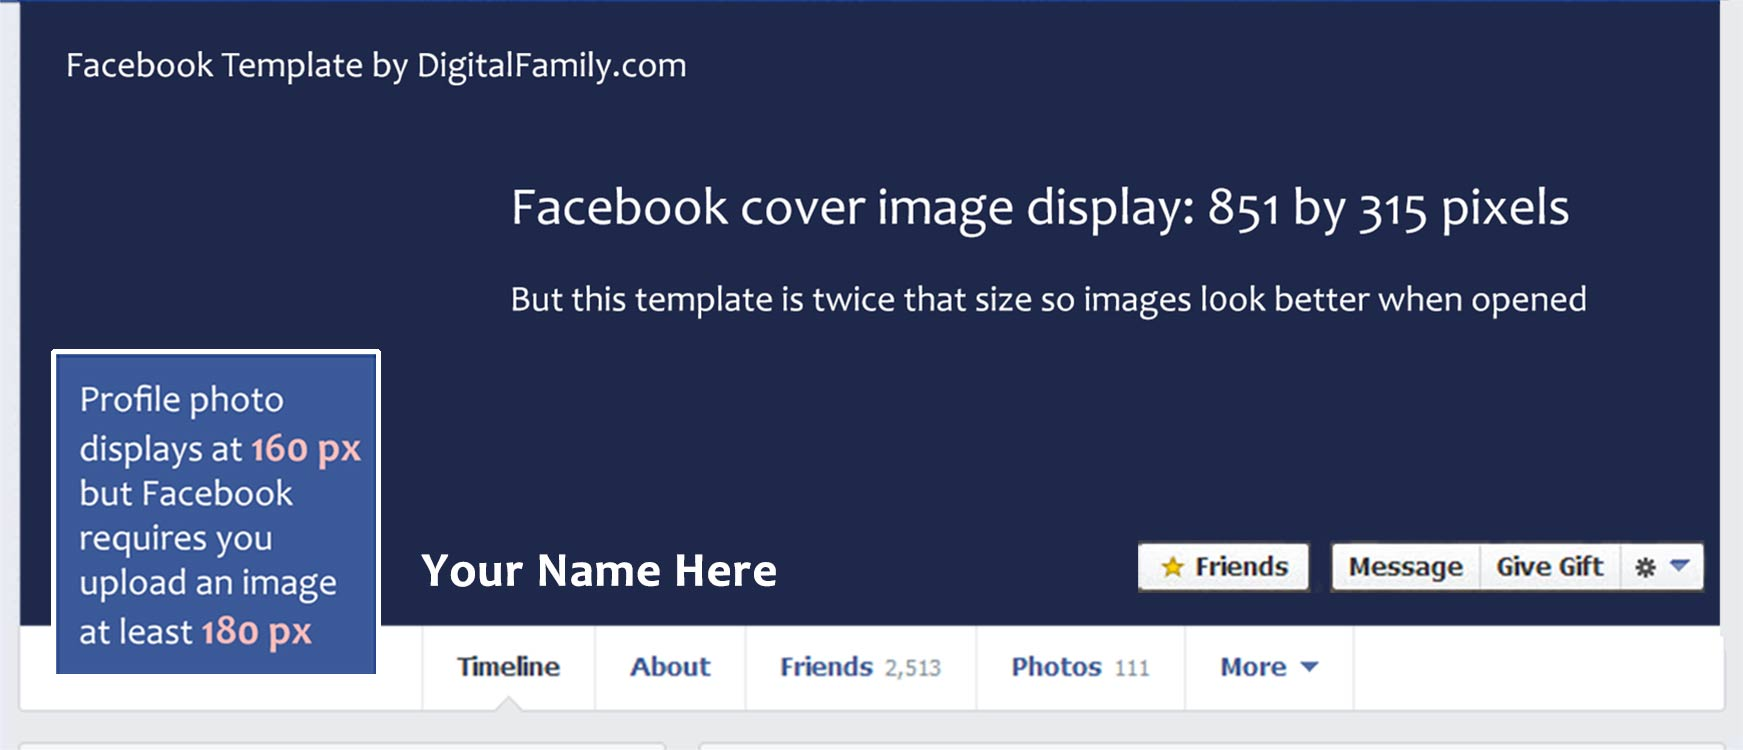 My free template is twice the size Facebook recommends